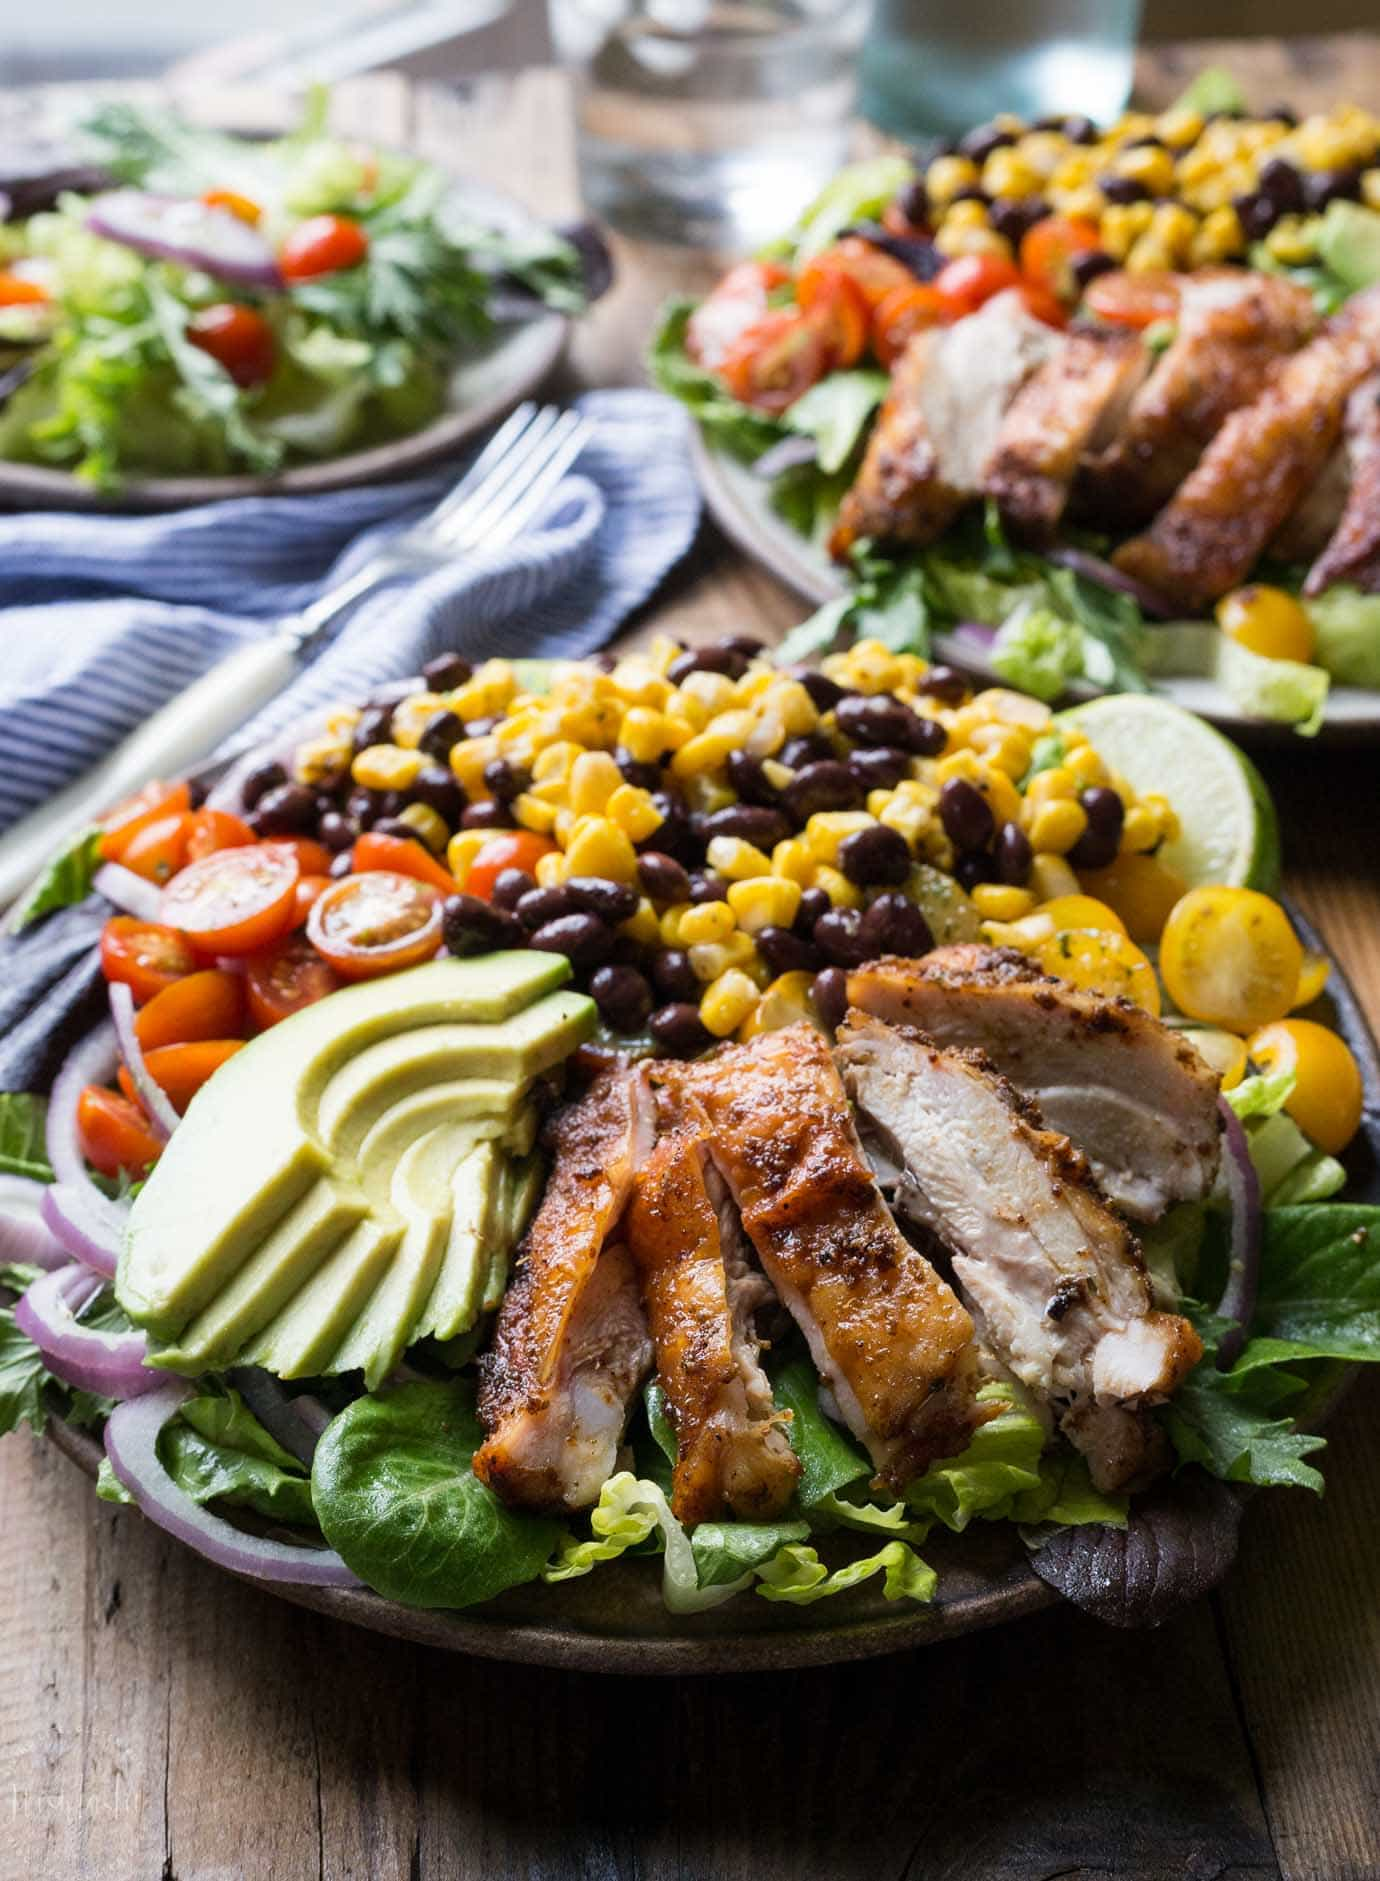 Southwest Chicken Salad with corn, beans, red onion, avocado, with Cilantro Lime Dressing